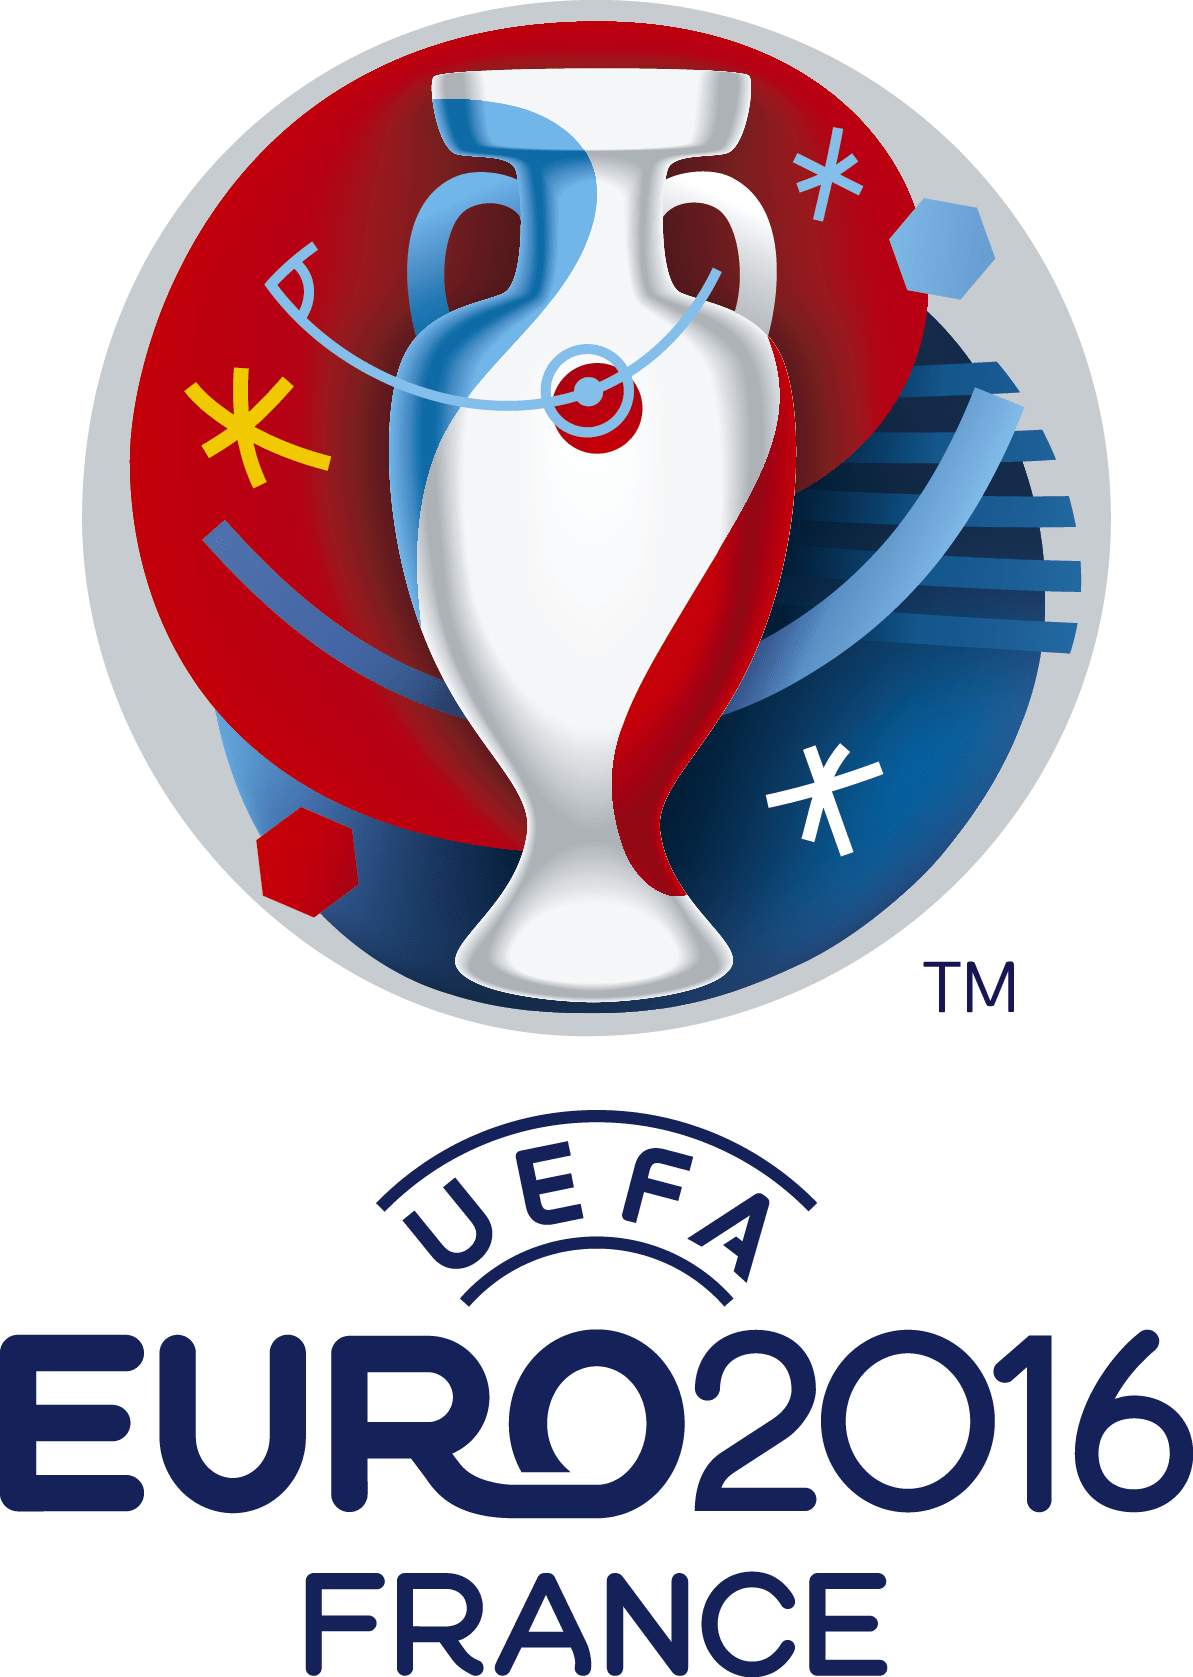 References - European soccer cup 2016 logo